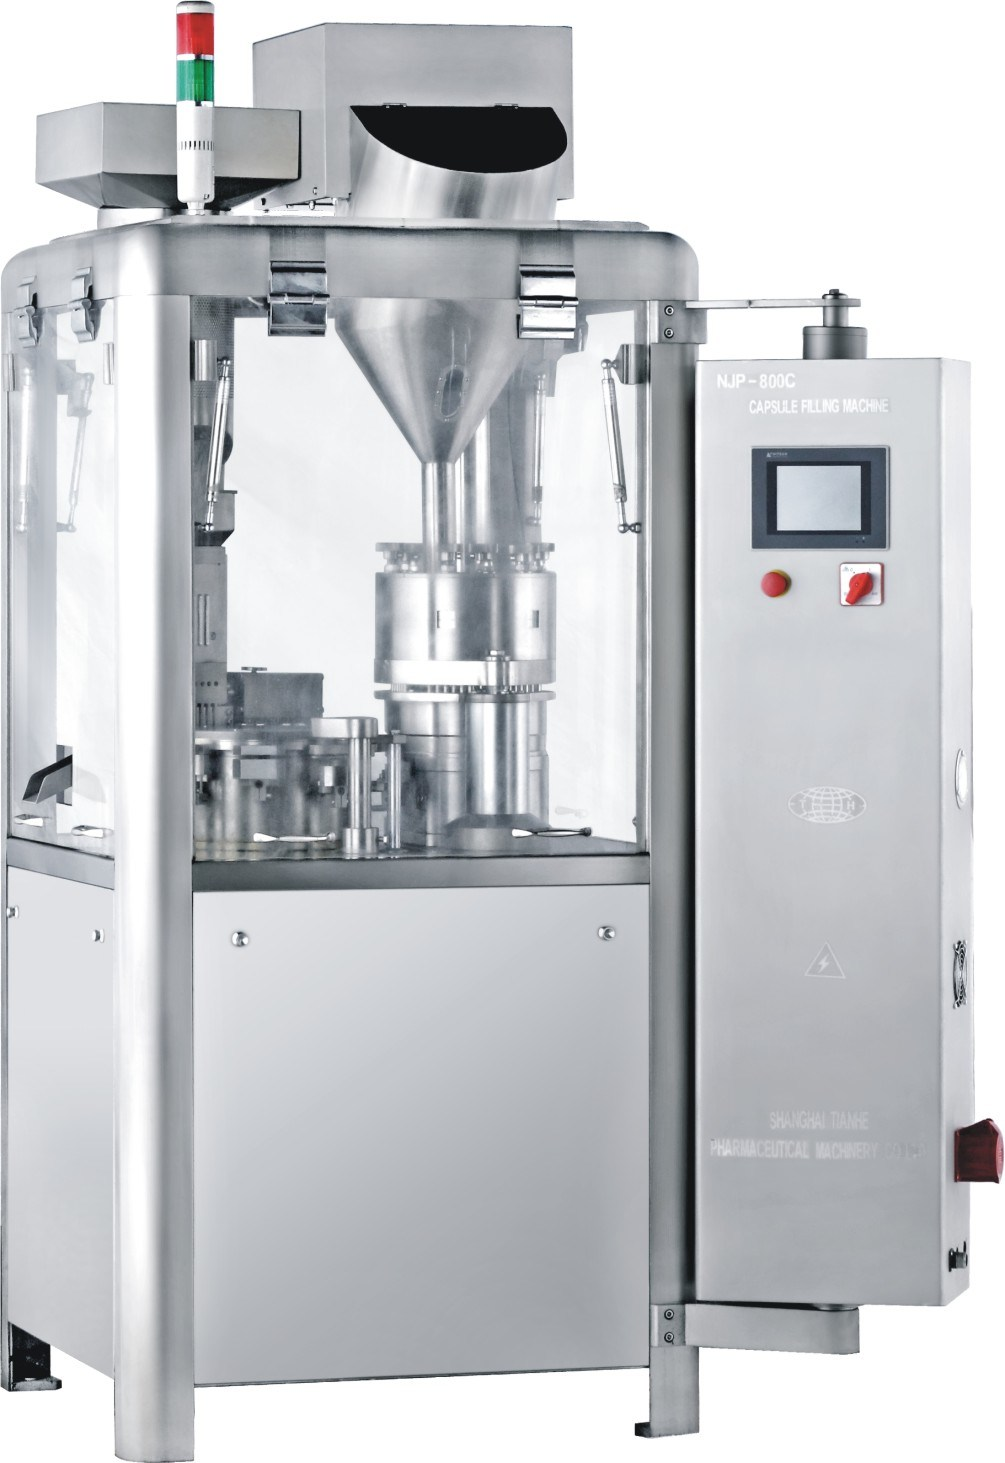 Njp600 Fully Automatic Capsule Filling Machine